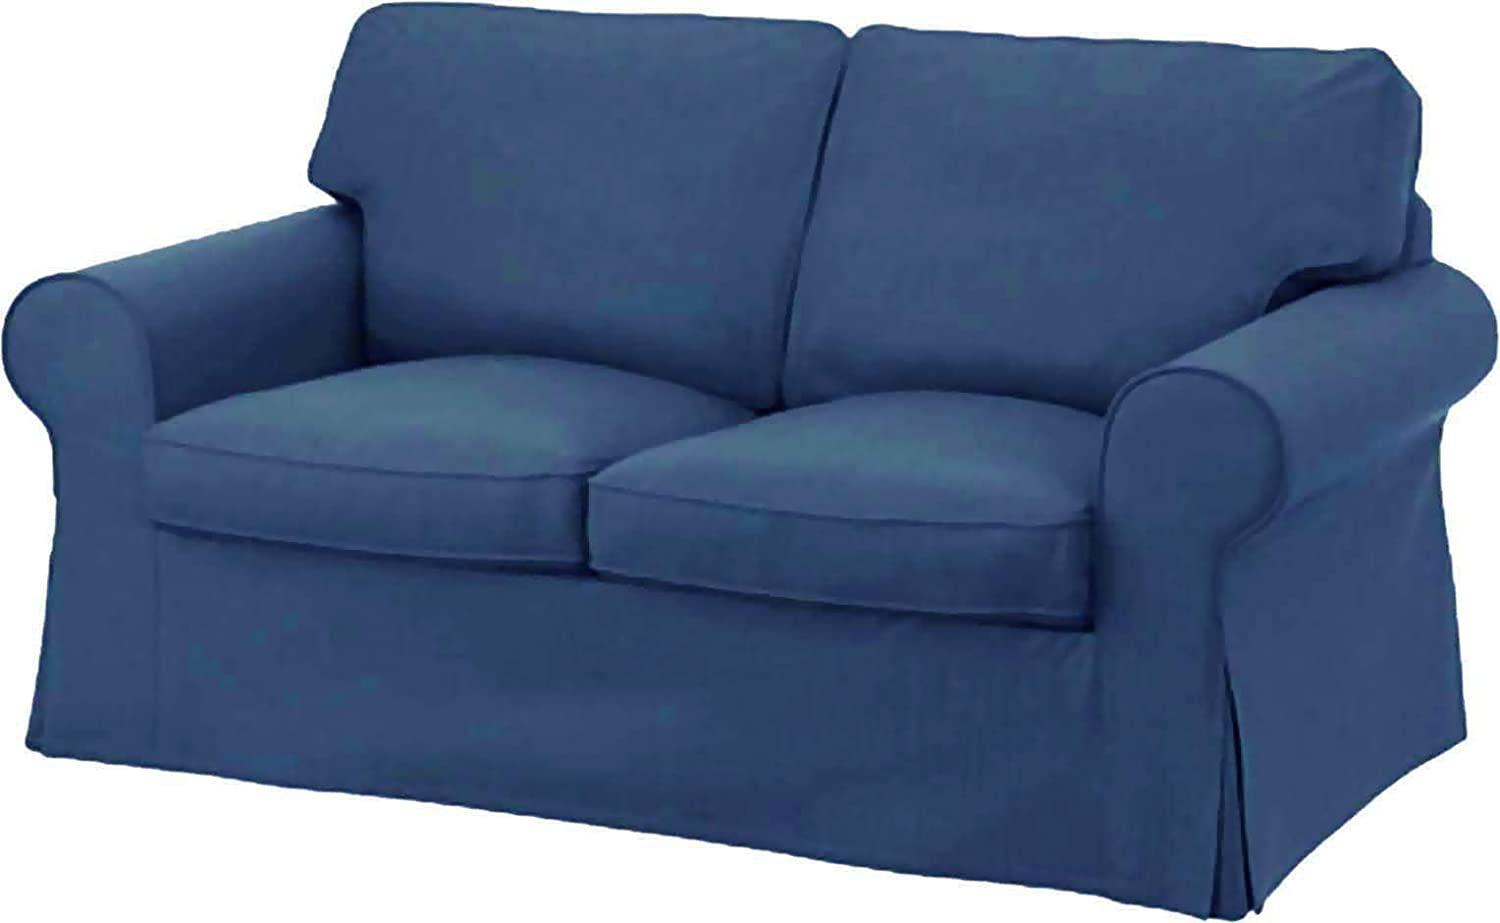 The Ektorp Two Seater Sofa Bed Cover Replacement Is Custom Made For Ikea Ektorp 2 Seater Sleeper Only A Quality Sofa Slipcover Replacement Deep Blue Amazon Ca Home Kitchen